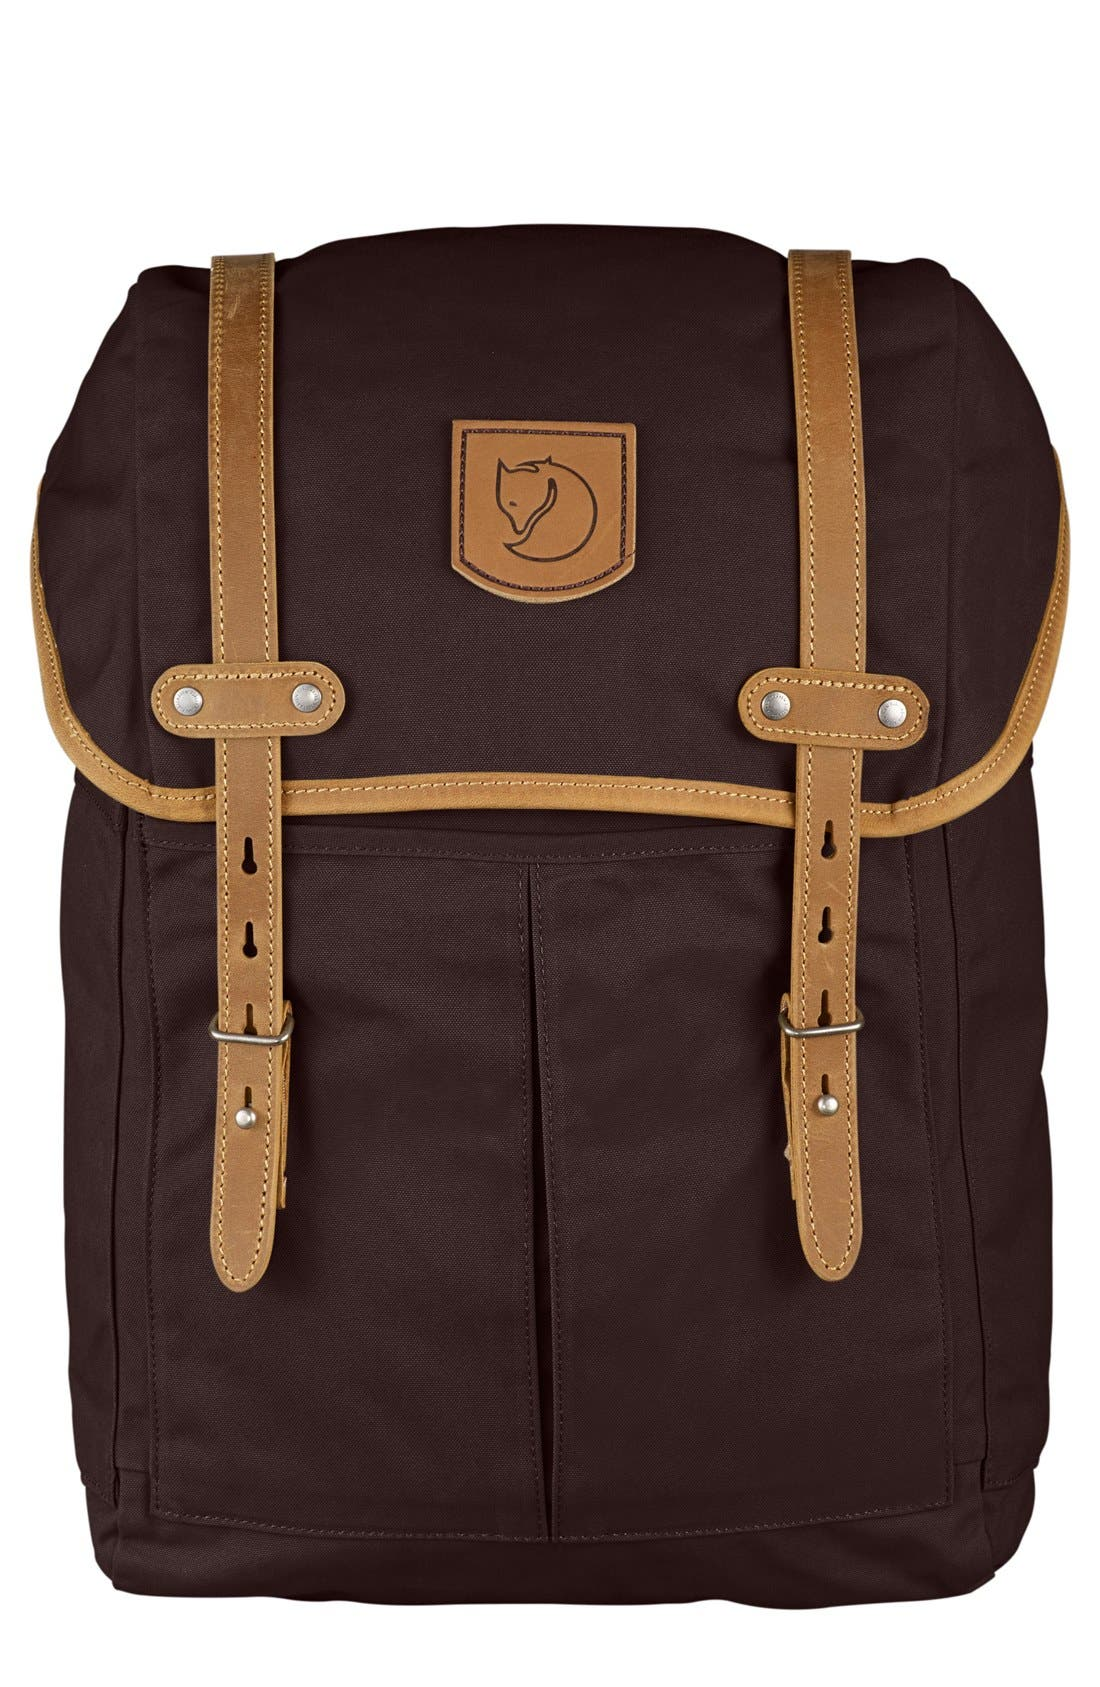 'No. 21' Rucksack,                         Main,                         color, Hickory Brown